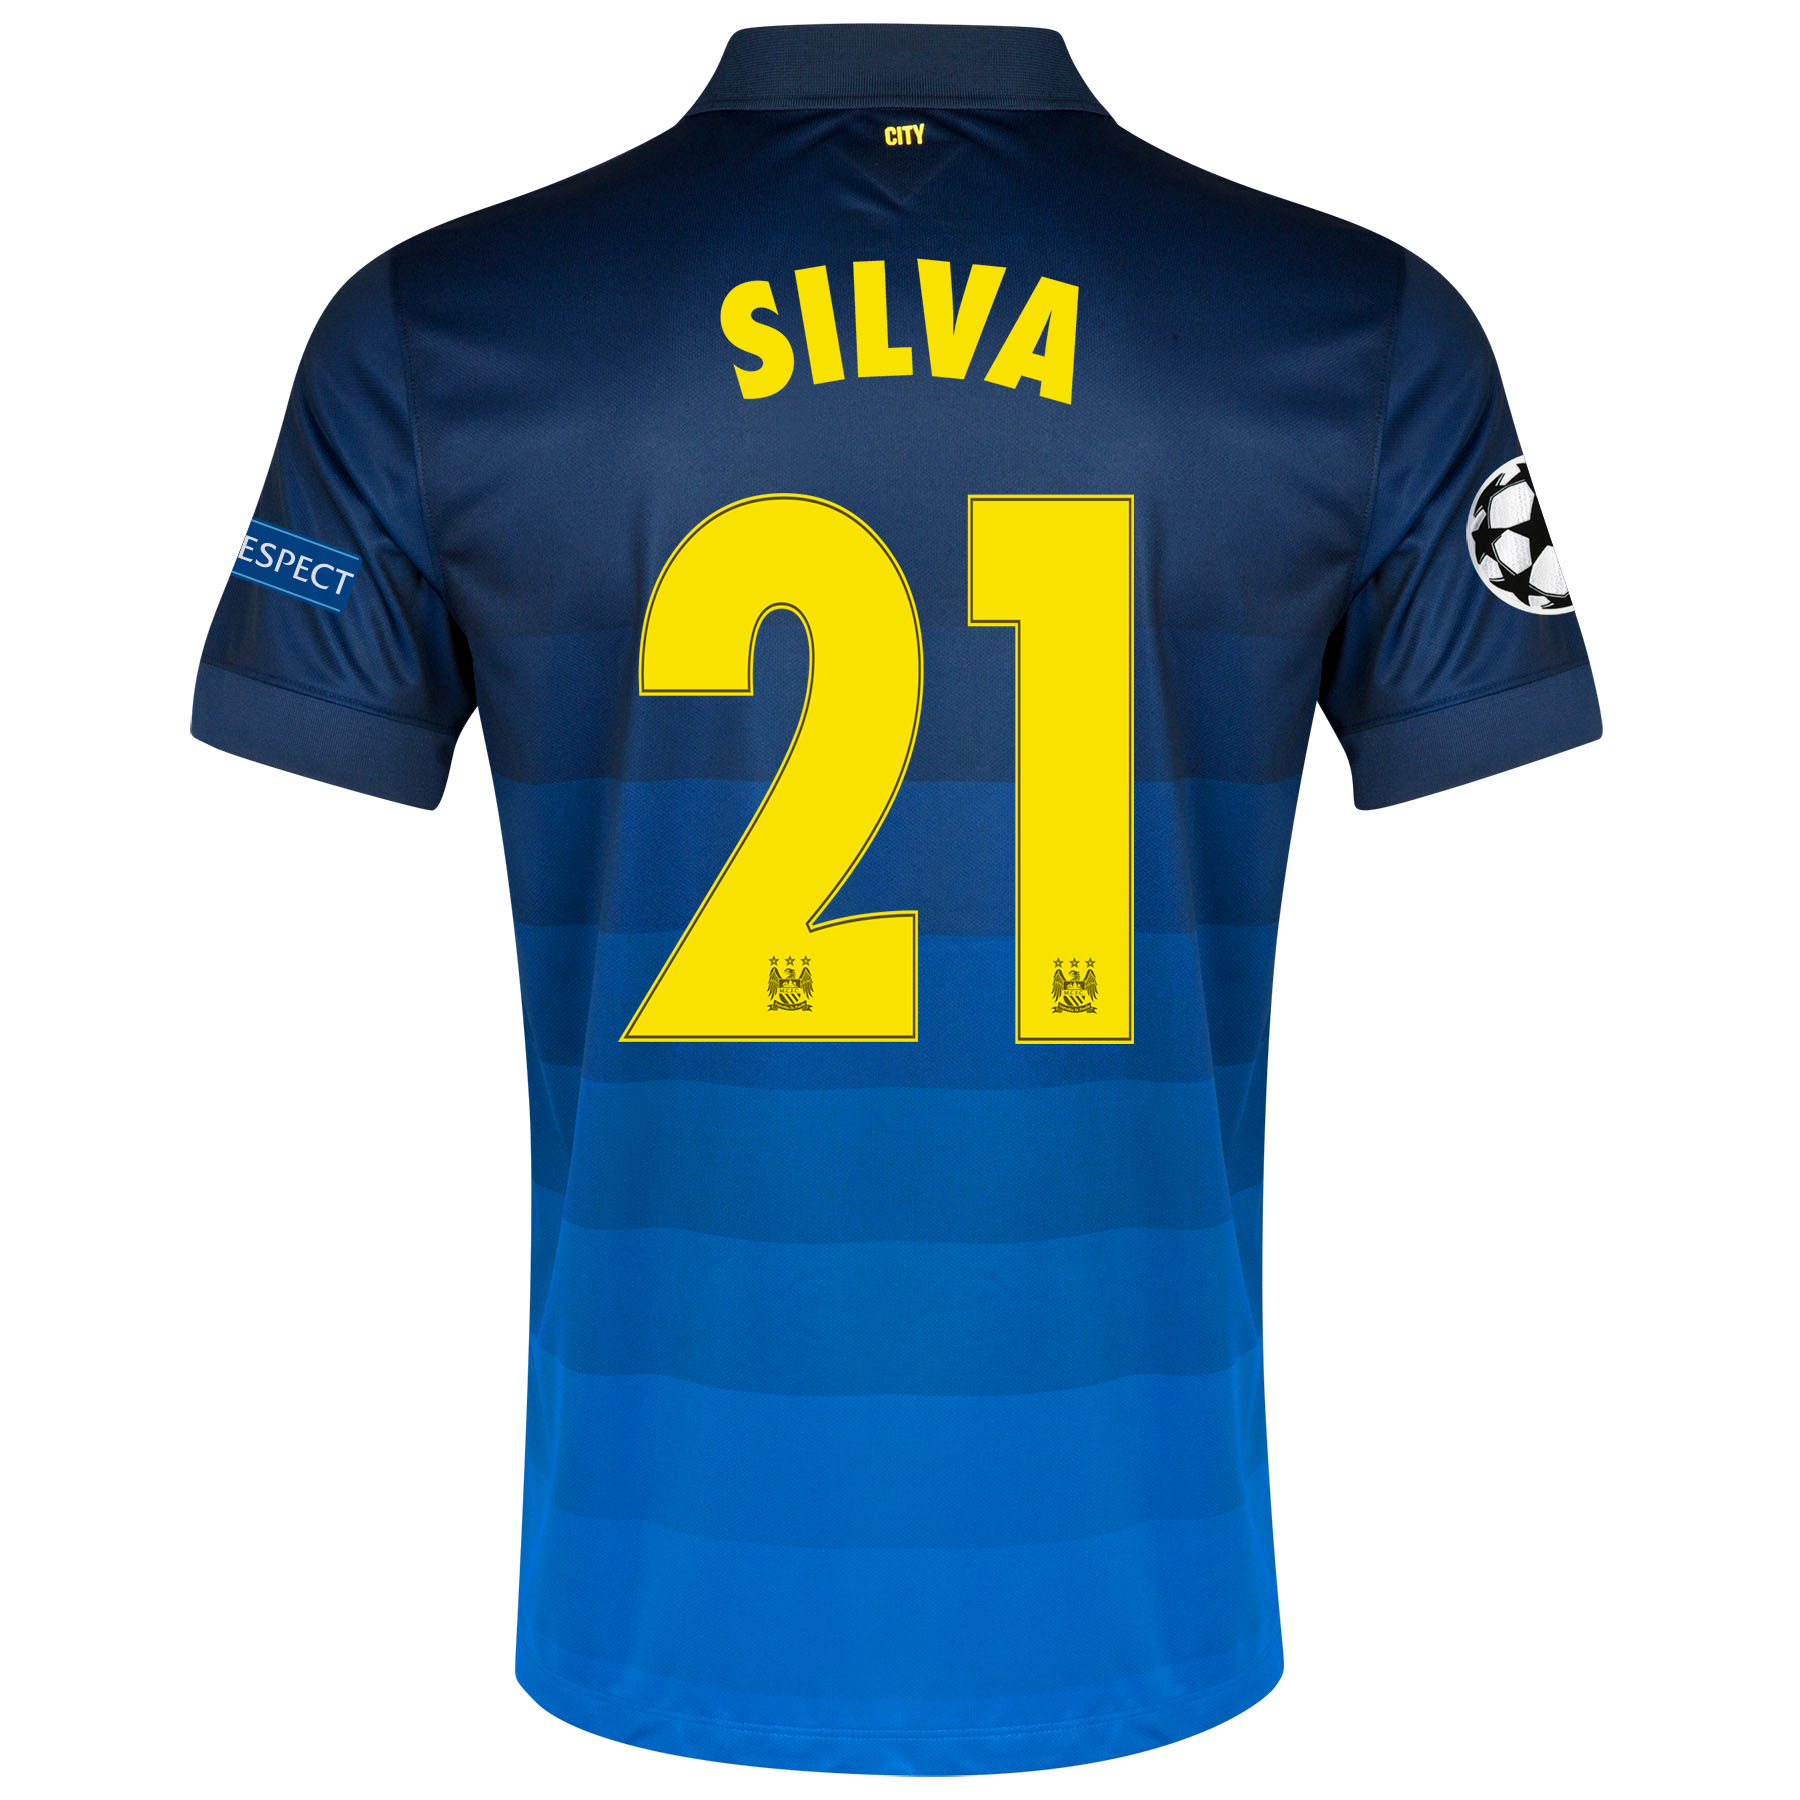 Manchester City UEFA Champions League Away Shirt 2014/15 with Silva 21 printing